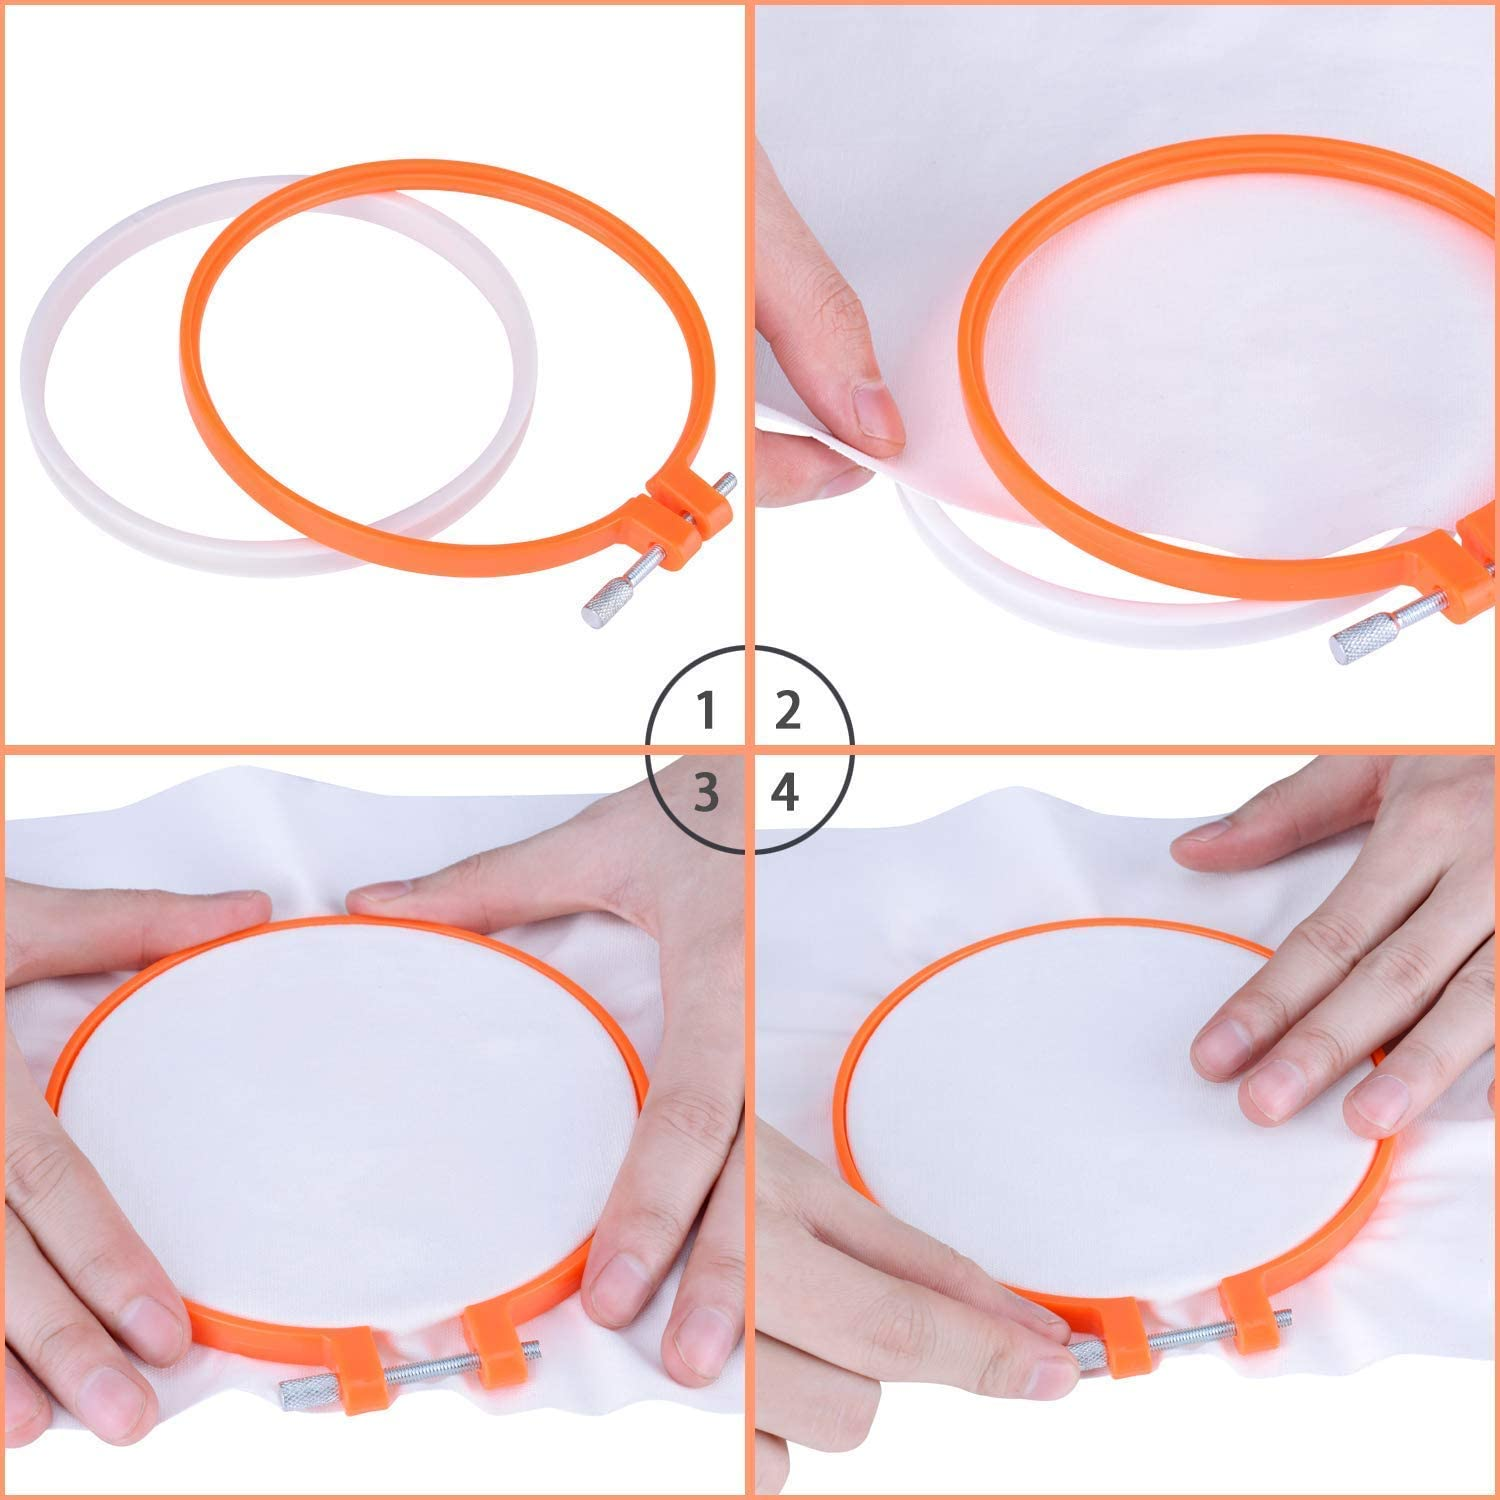 KOMOREBI /4PCS Embroidery Hoops Adjustable DIY Plastic Cross Stitch Hoop Ring for Embroidery and Cross Stitch 4.9inch to 11inch